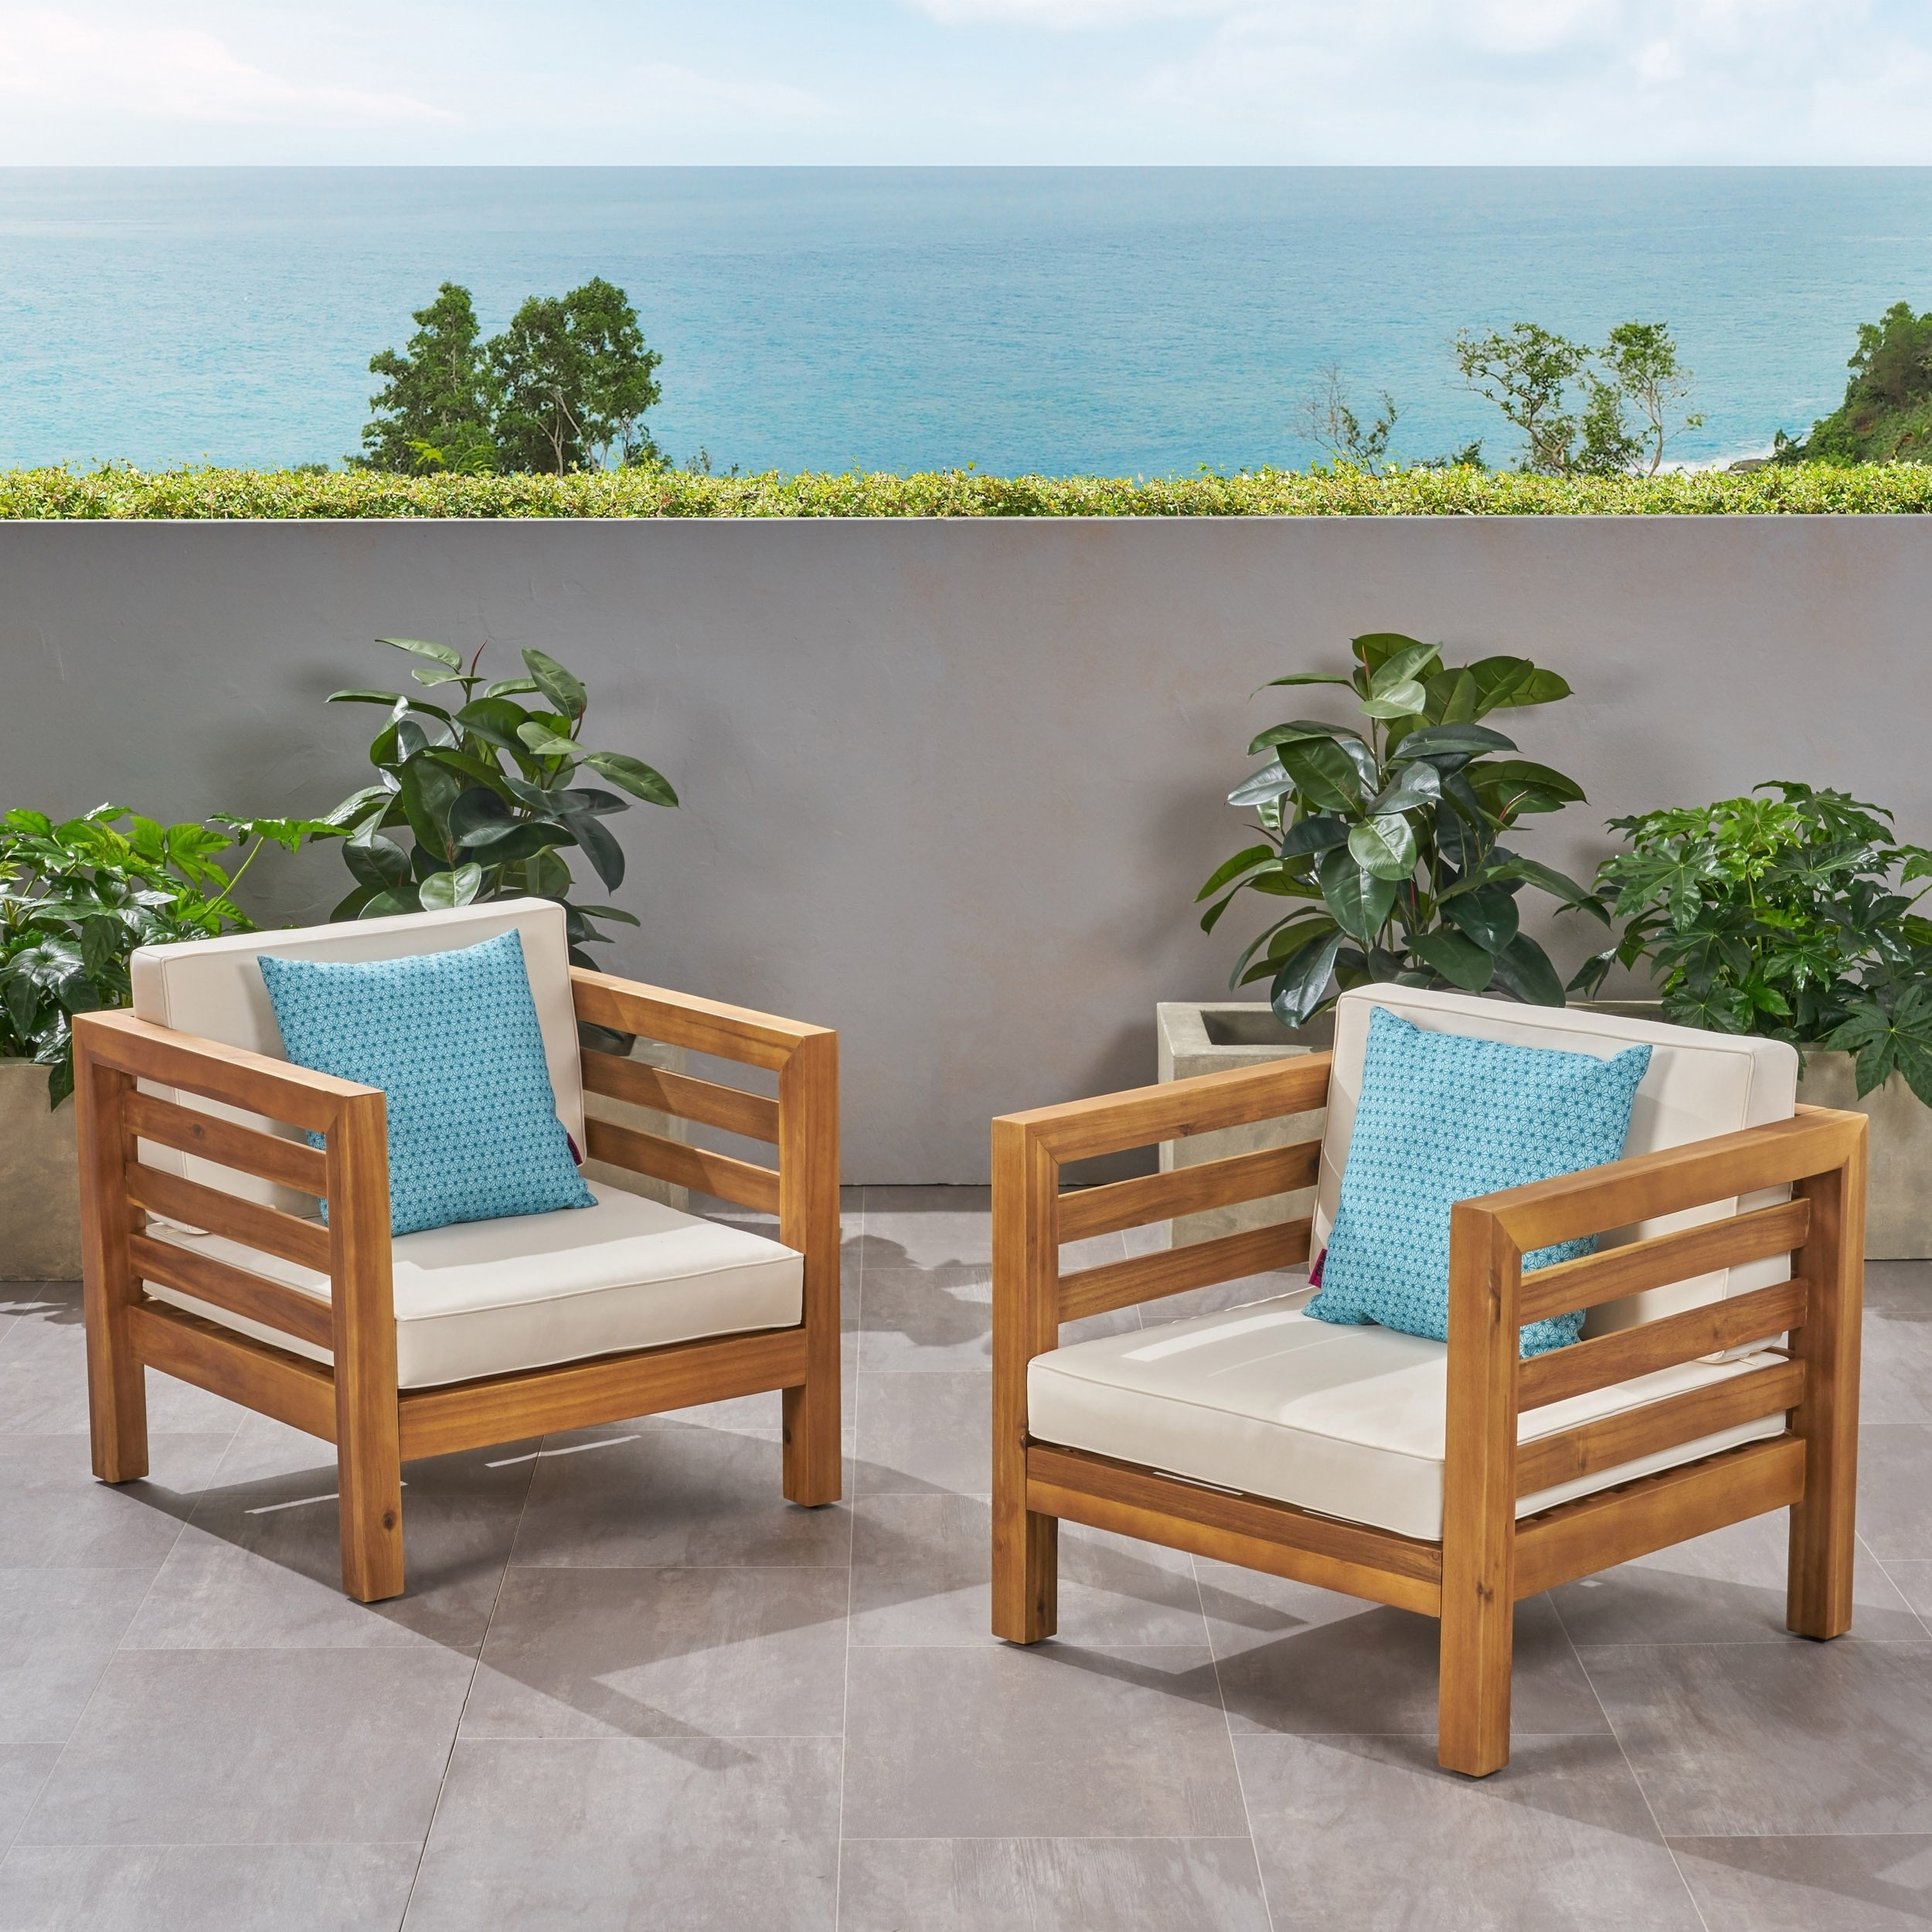 Fantastic Oana Outdoor Acacia Wood Club Chairs With Cushions Set Of 2 By Christopher Knight Home Lamtechconsult Wood Chair Design Ideas Lamtechconsultcom